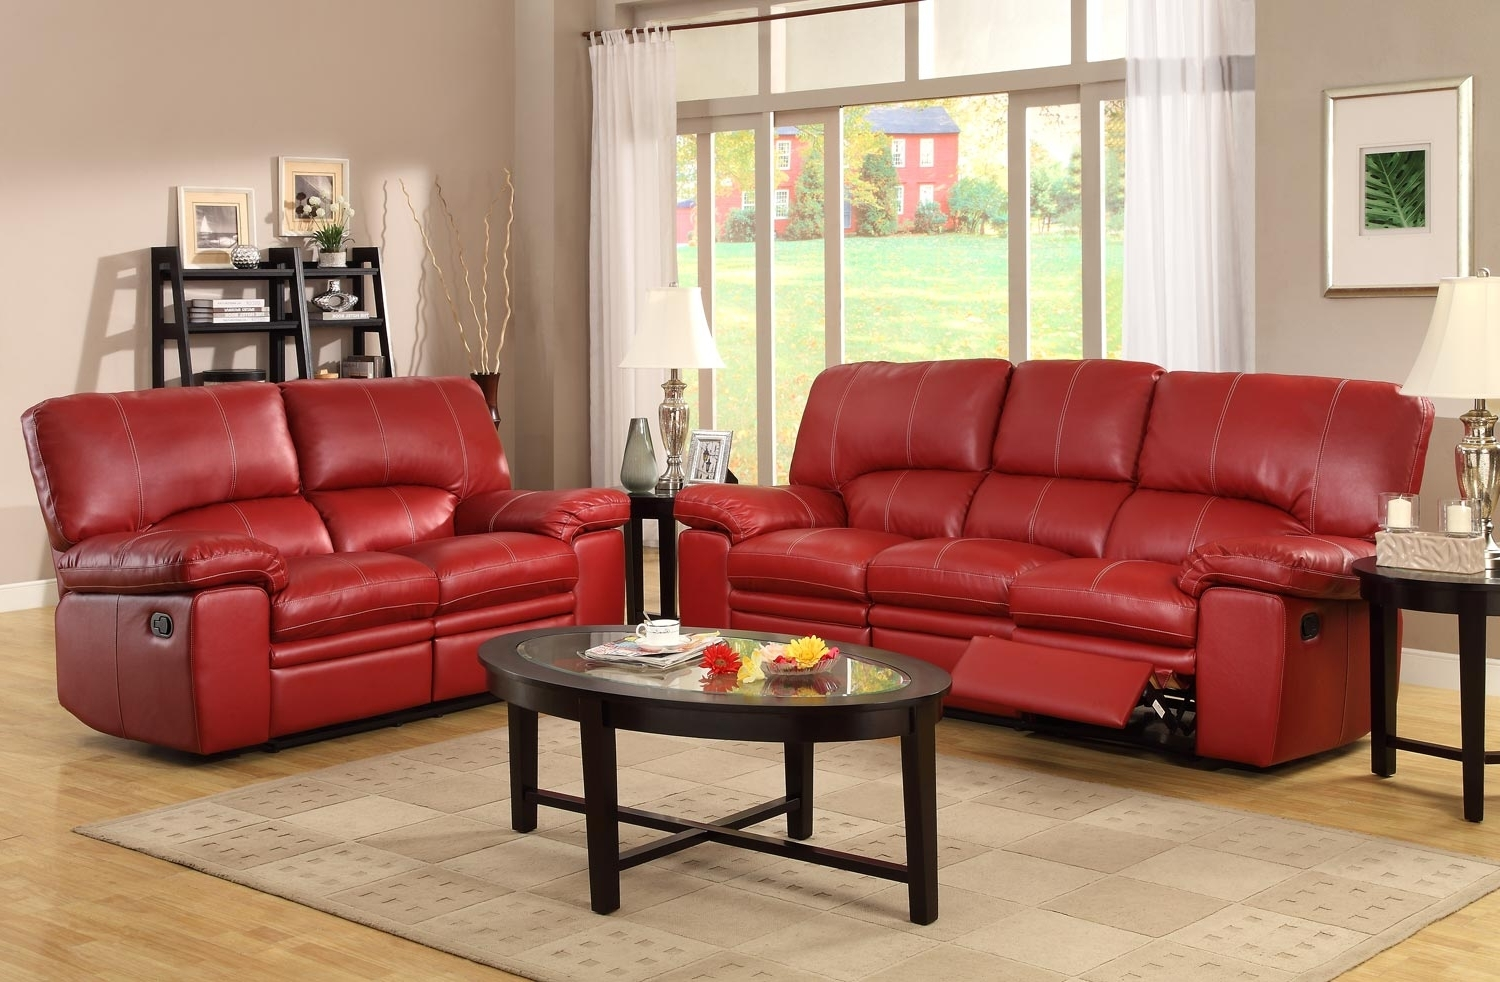 2019 Red Leather Couches For Living Room Pertaining To Great Red Leather Sofa Set 75 In Living Room Sofa Ideas With Red (View 5 of 20)